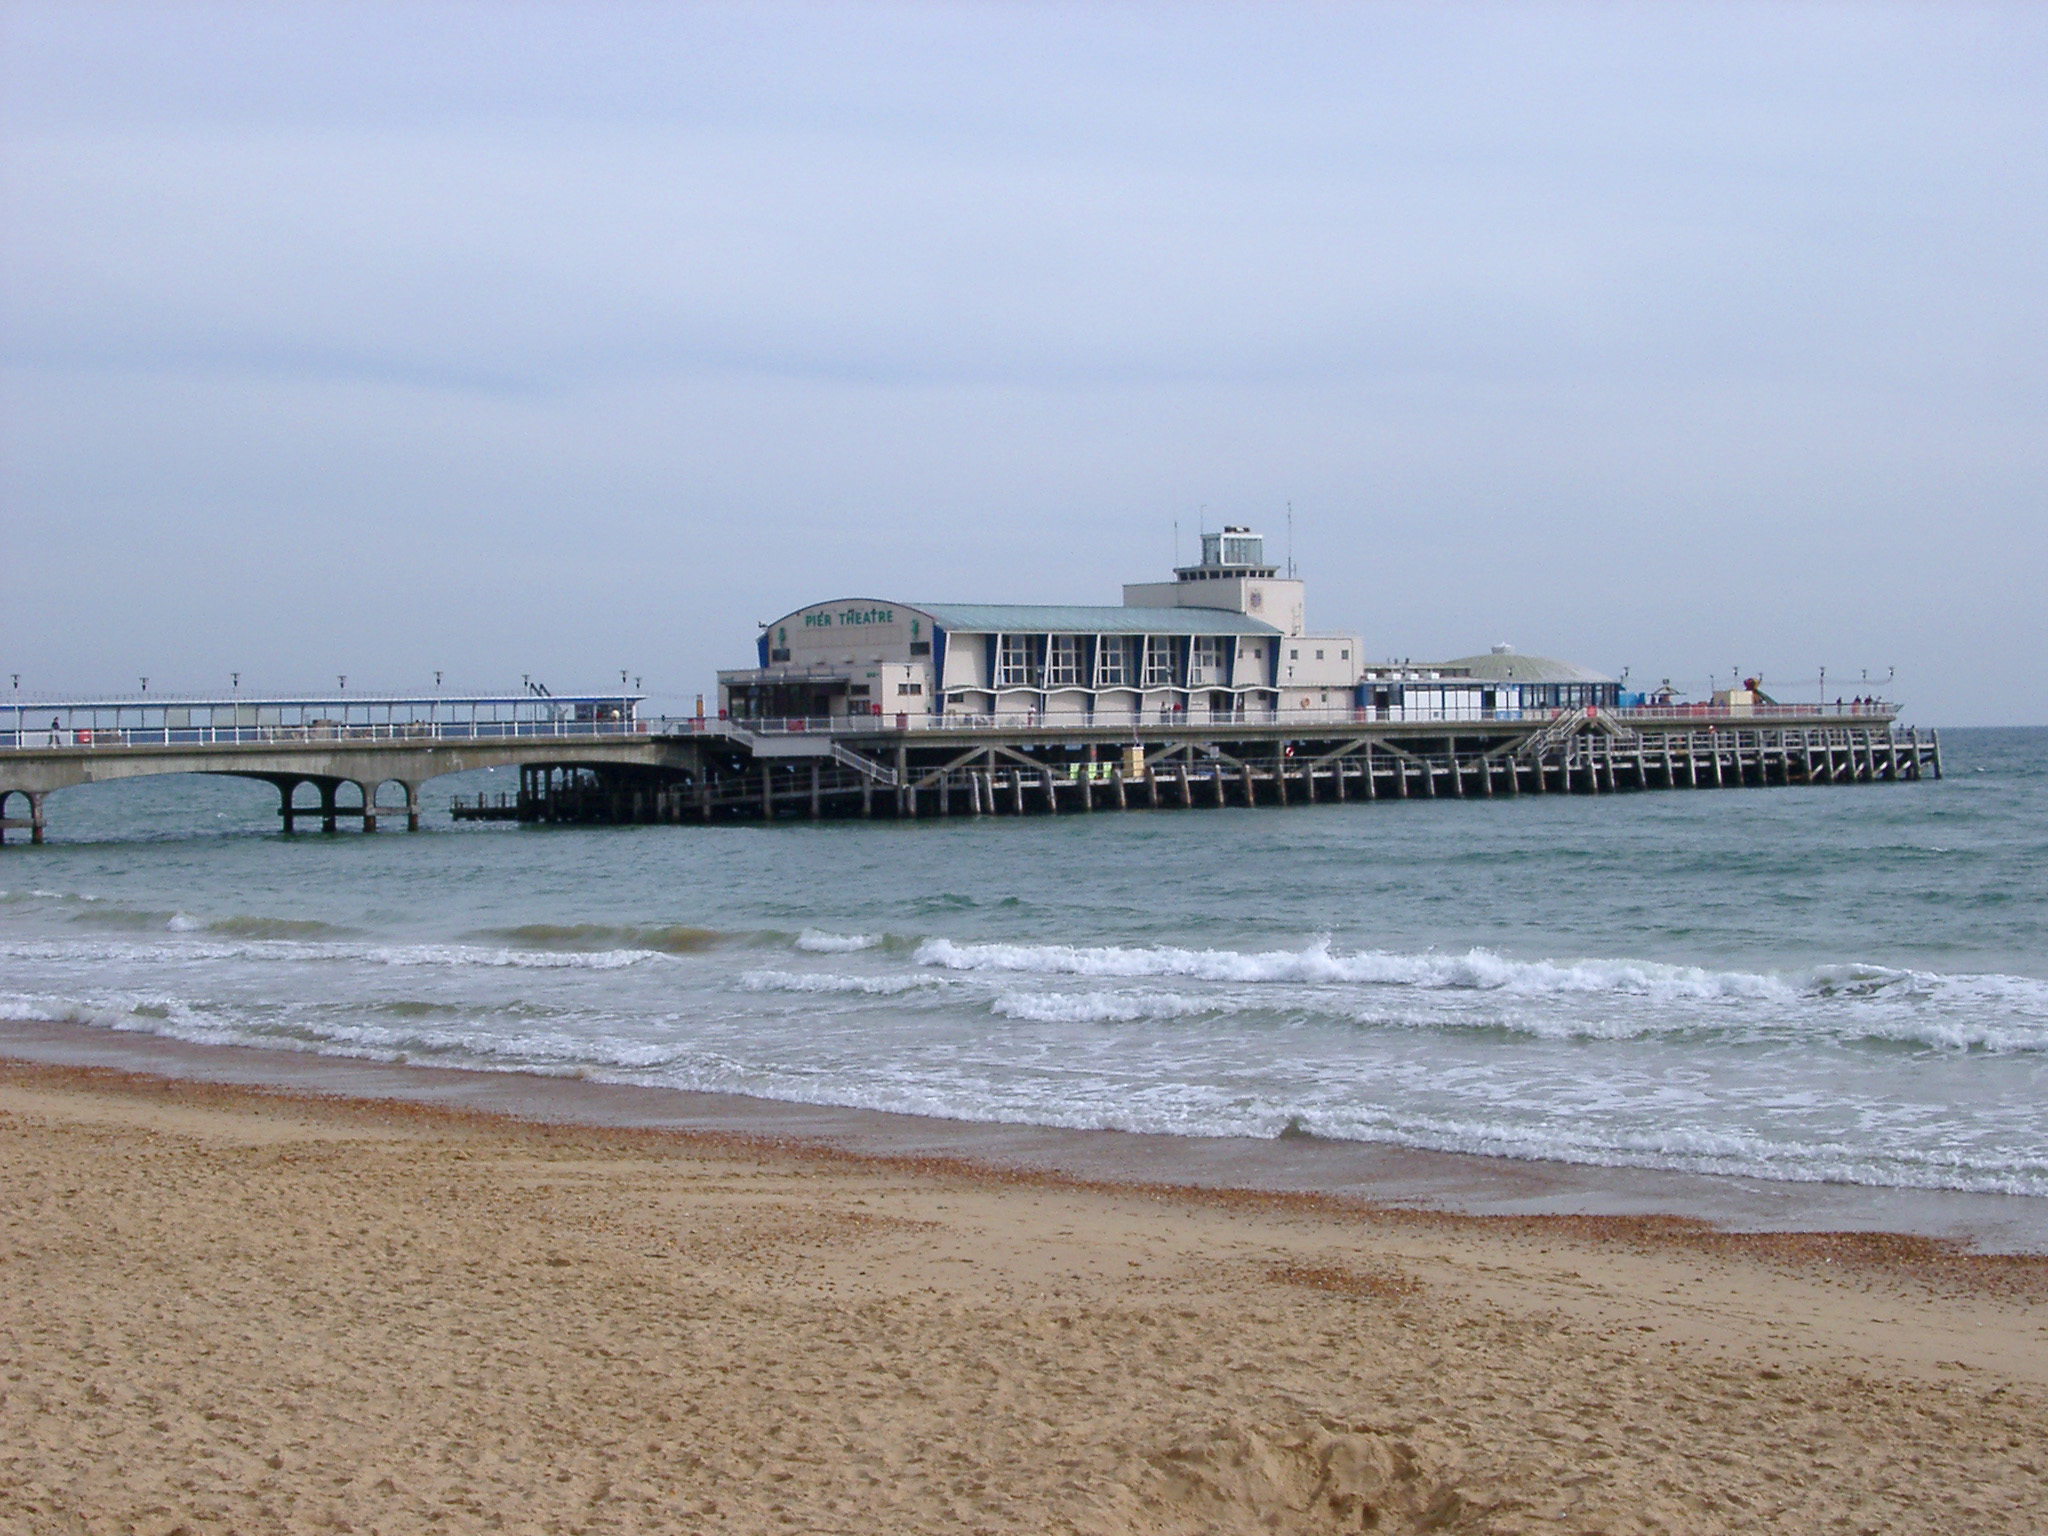 bournemouths victorian pier with 1950's theatre buildings